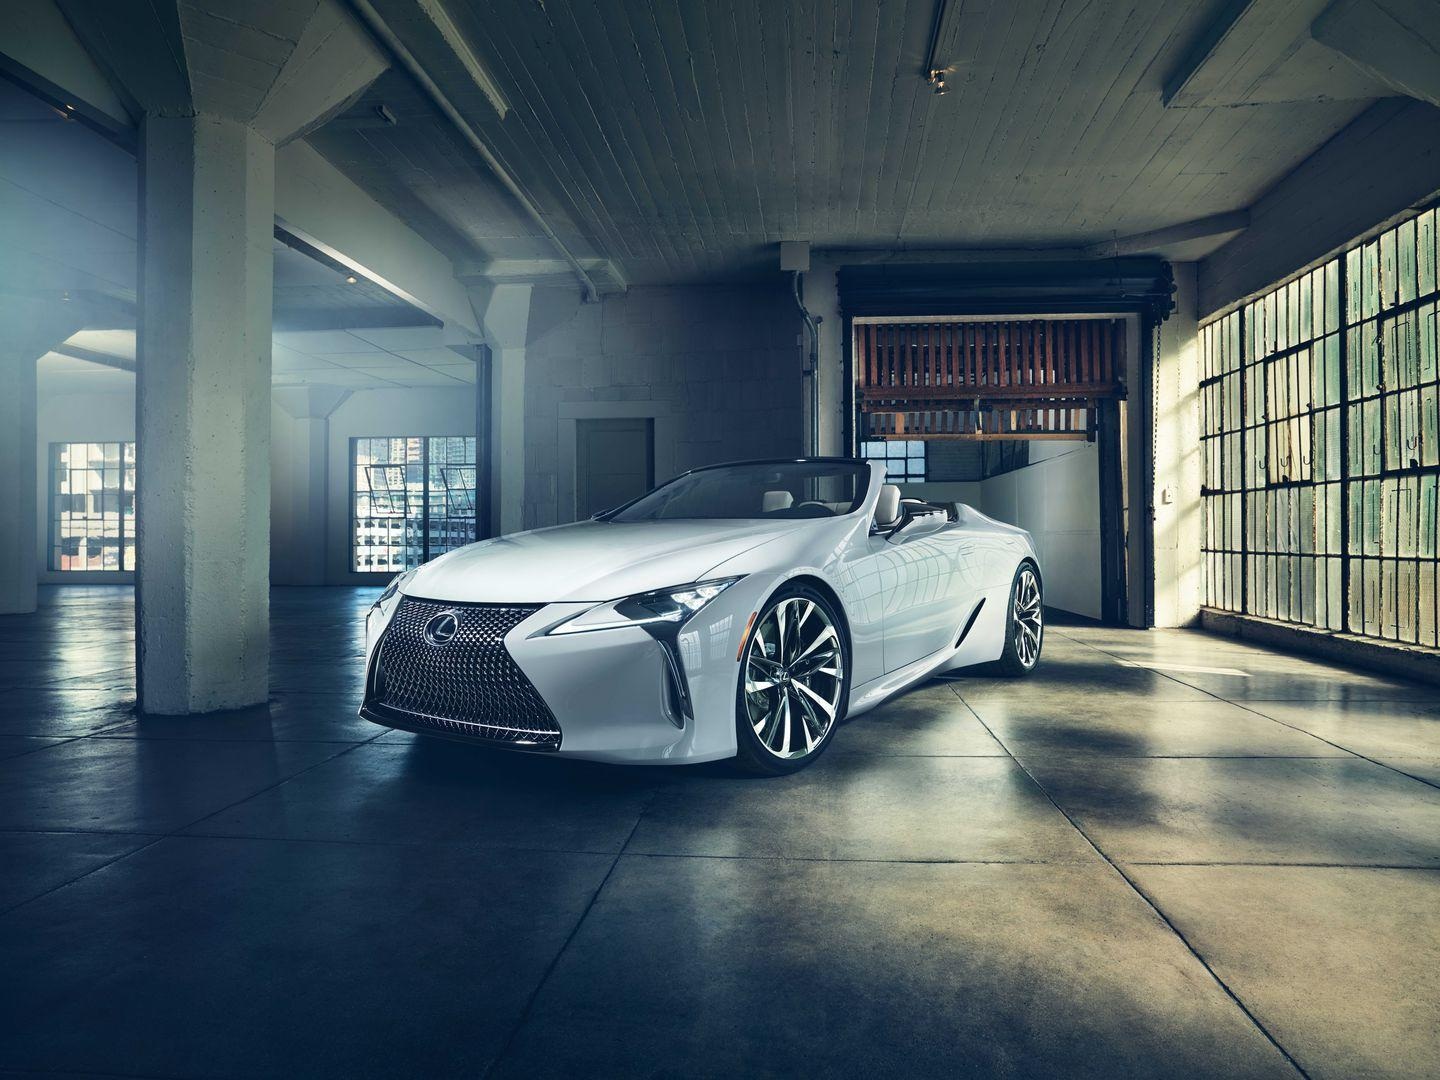 """<p>What's there to think about, Lexus? <a href=""""https://www.caranddriver.com/lexus/lc"""" rel=""""nofollow noopener"""" target=""""_blank"""" data-ylk=""""slk:The slinky LC coupe"""" class=""""link rapid-noclick-resp"""">The slinky LC coupe</a> that's been on sale since 2017 still looks like a concept car that Lexus accidentally shipped to dealerships.</p>"""